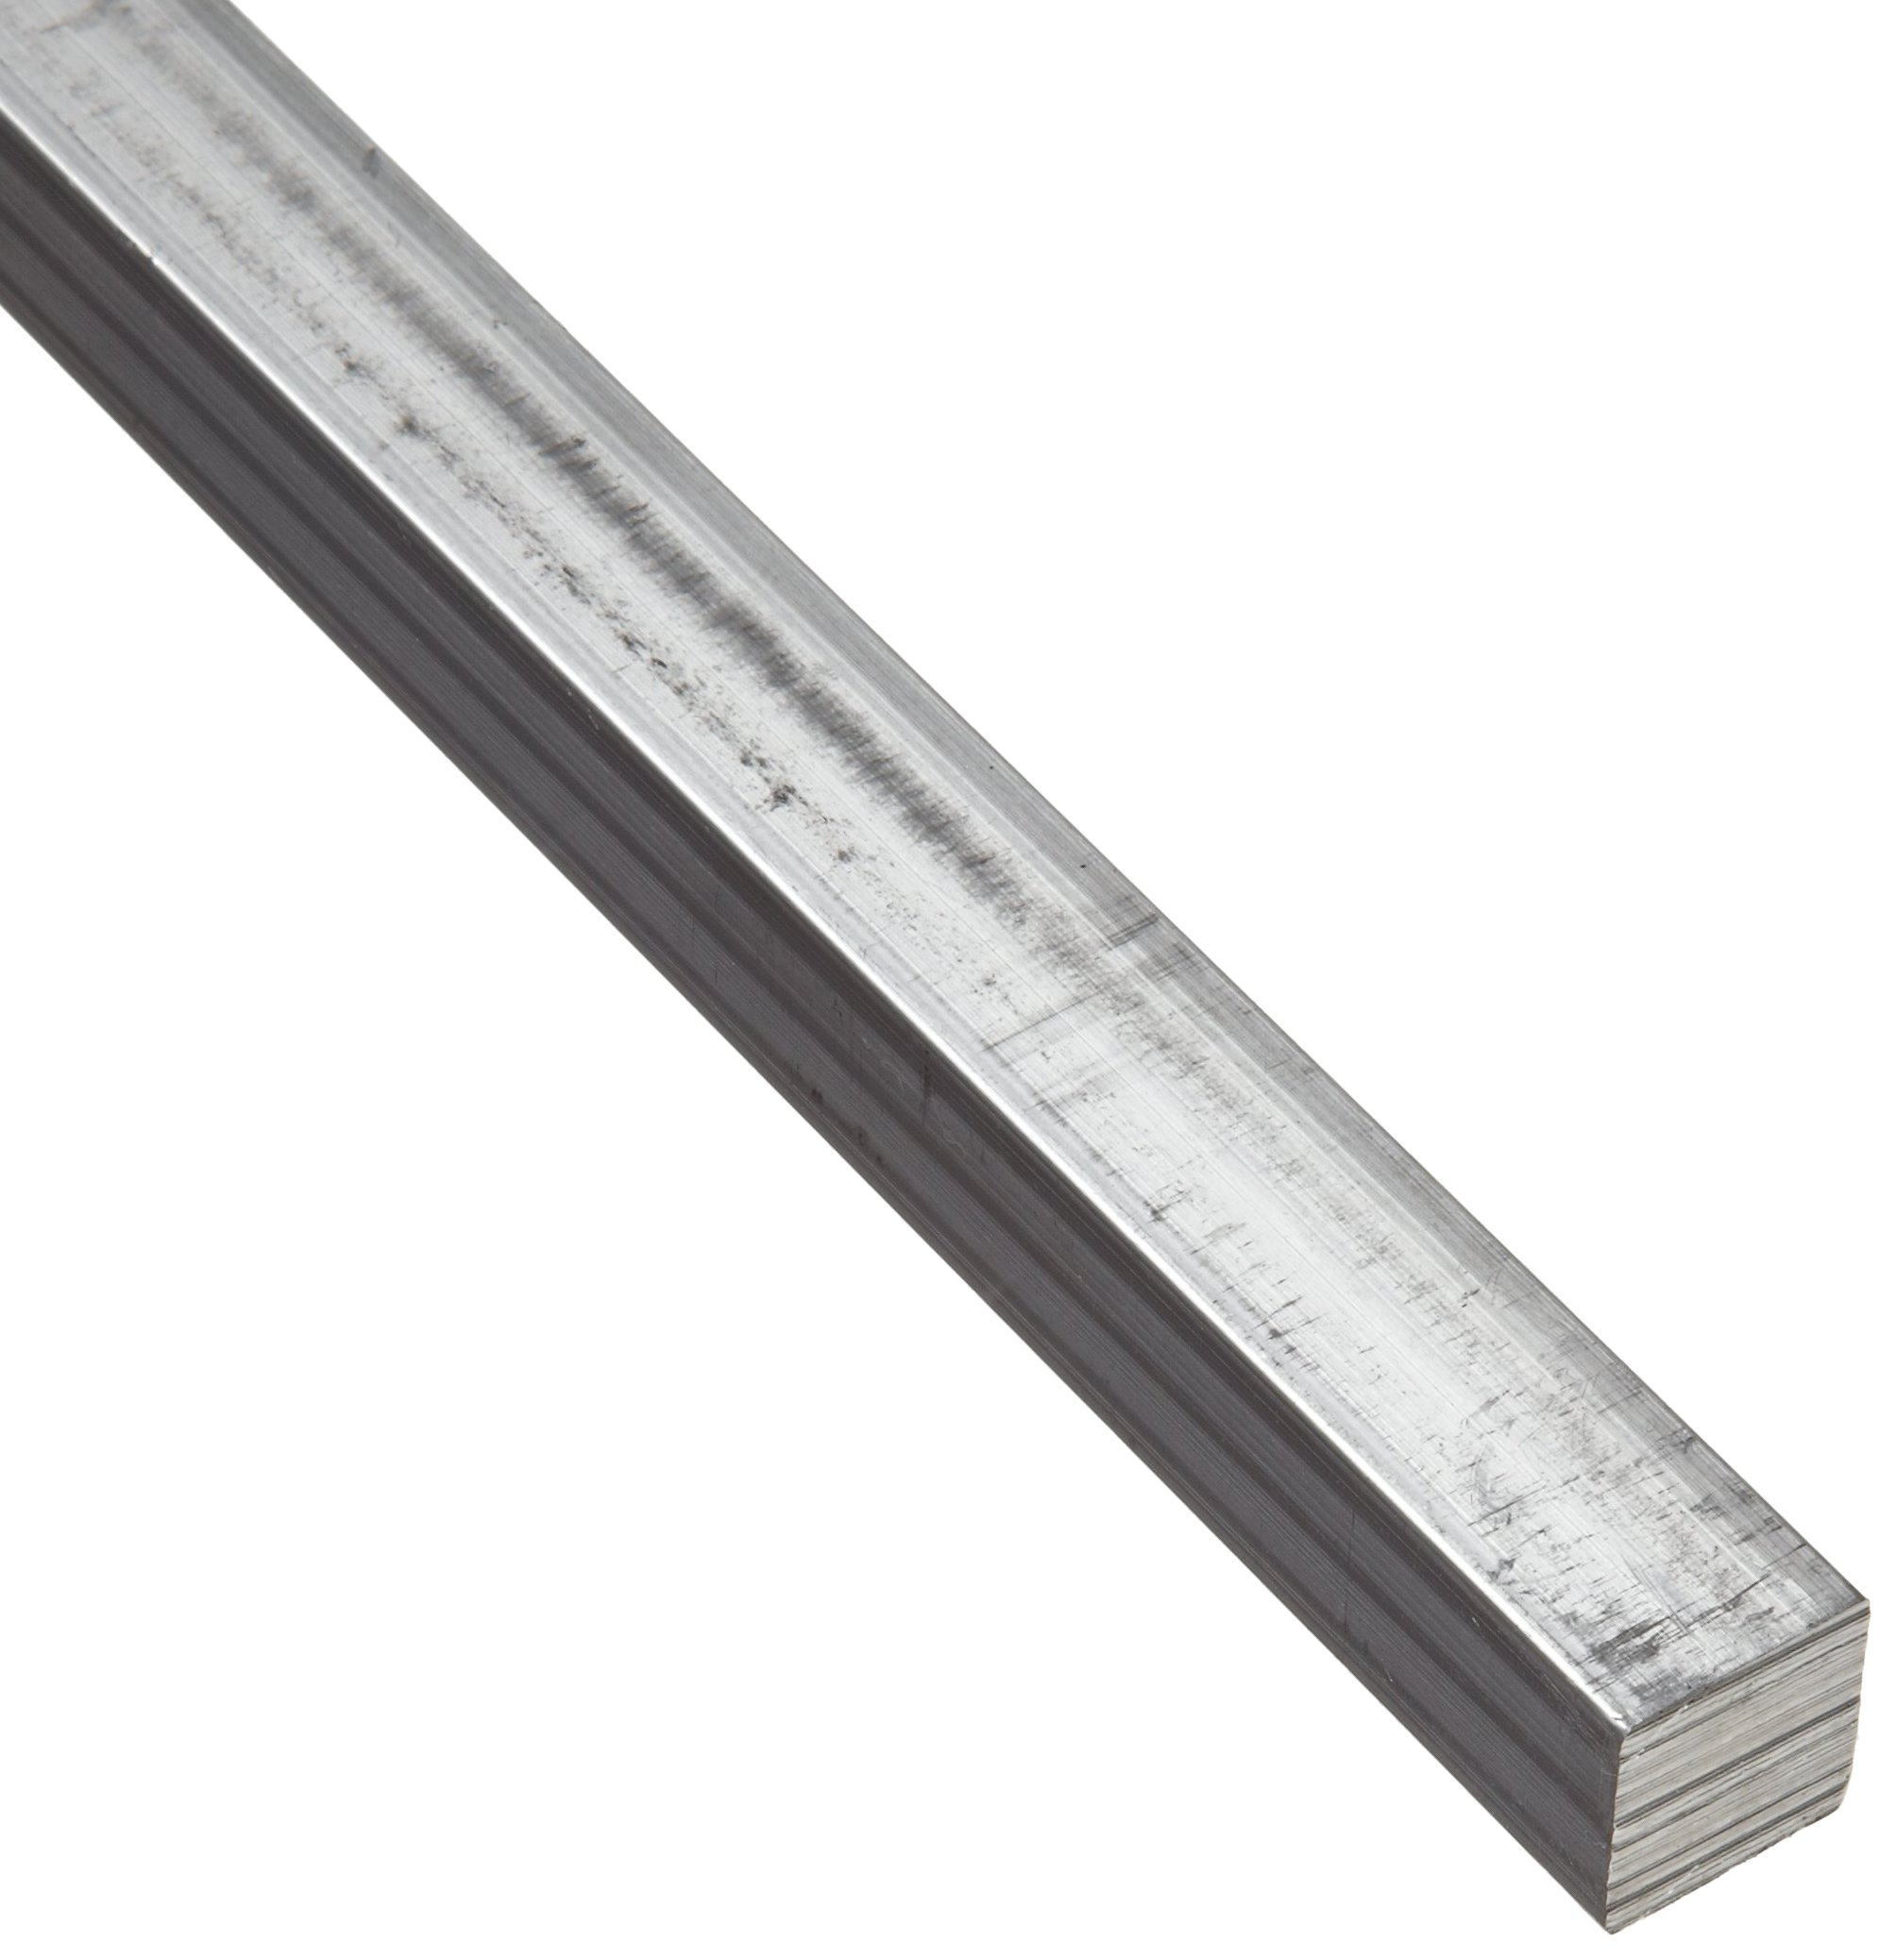 6063 Aluminum Rectangular Bar, Unpolished (Mill) Finish, T42 Temper, AMS QQ-A-200/9/ASTM B221, 3/4'' Thickness, 3/4'' Width, 72'' Length by Small Parts